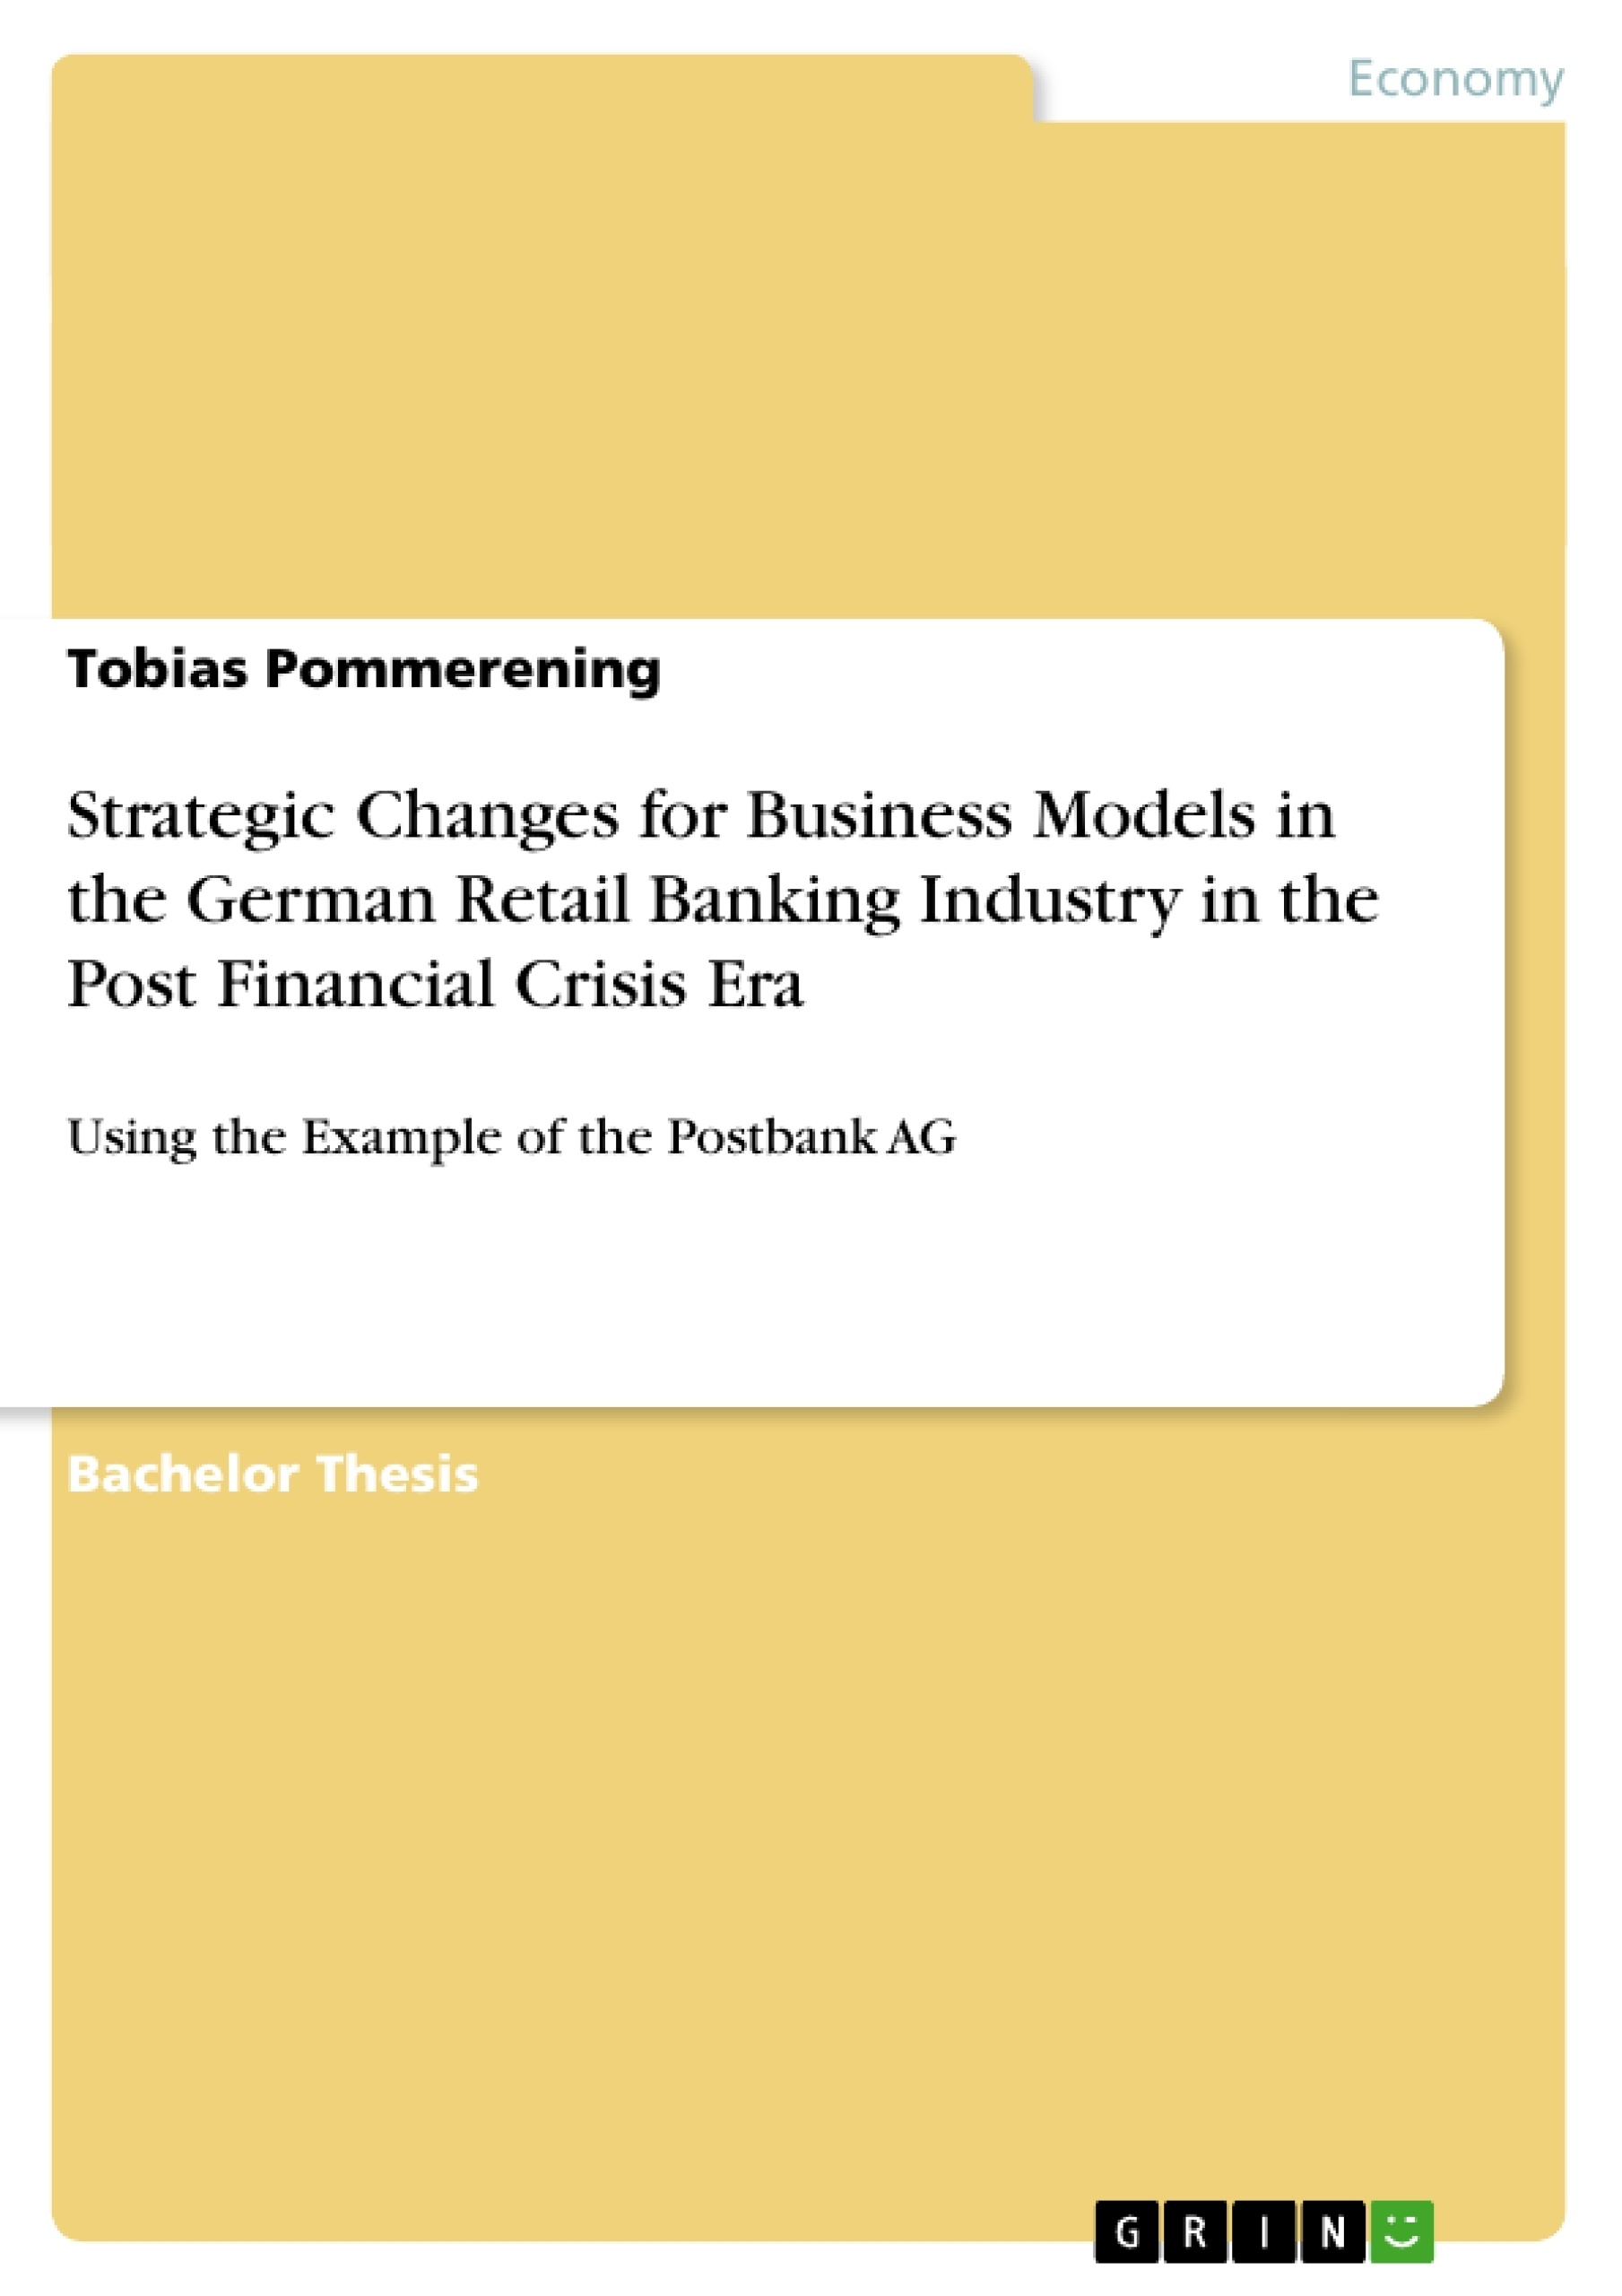 Title: Strategic Changes for Business Models in the German Retail Banking Industry in the Post Financial Crisis Era